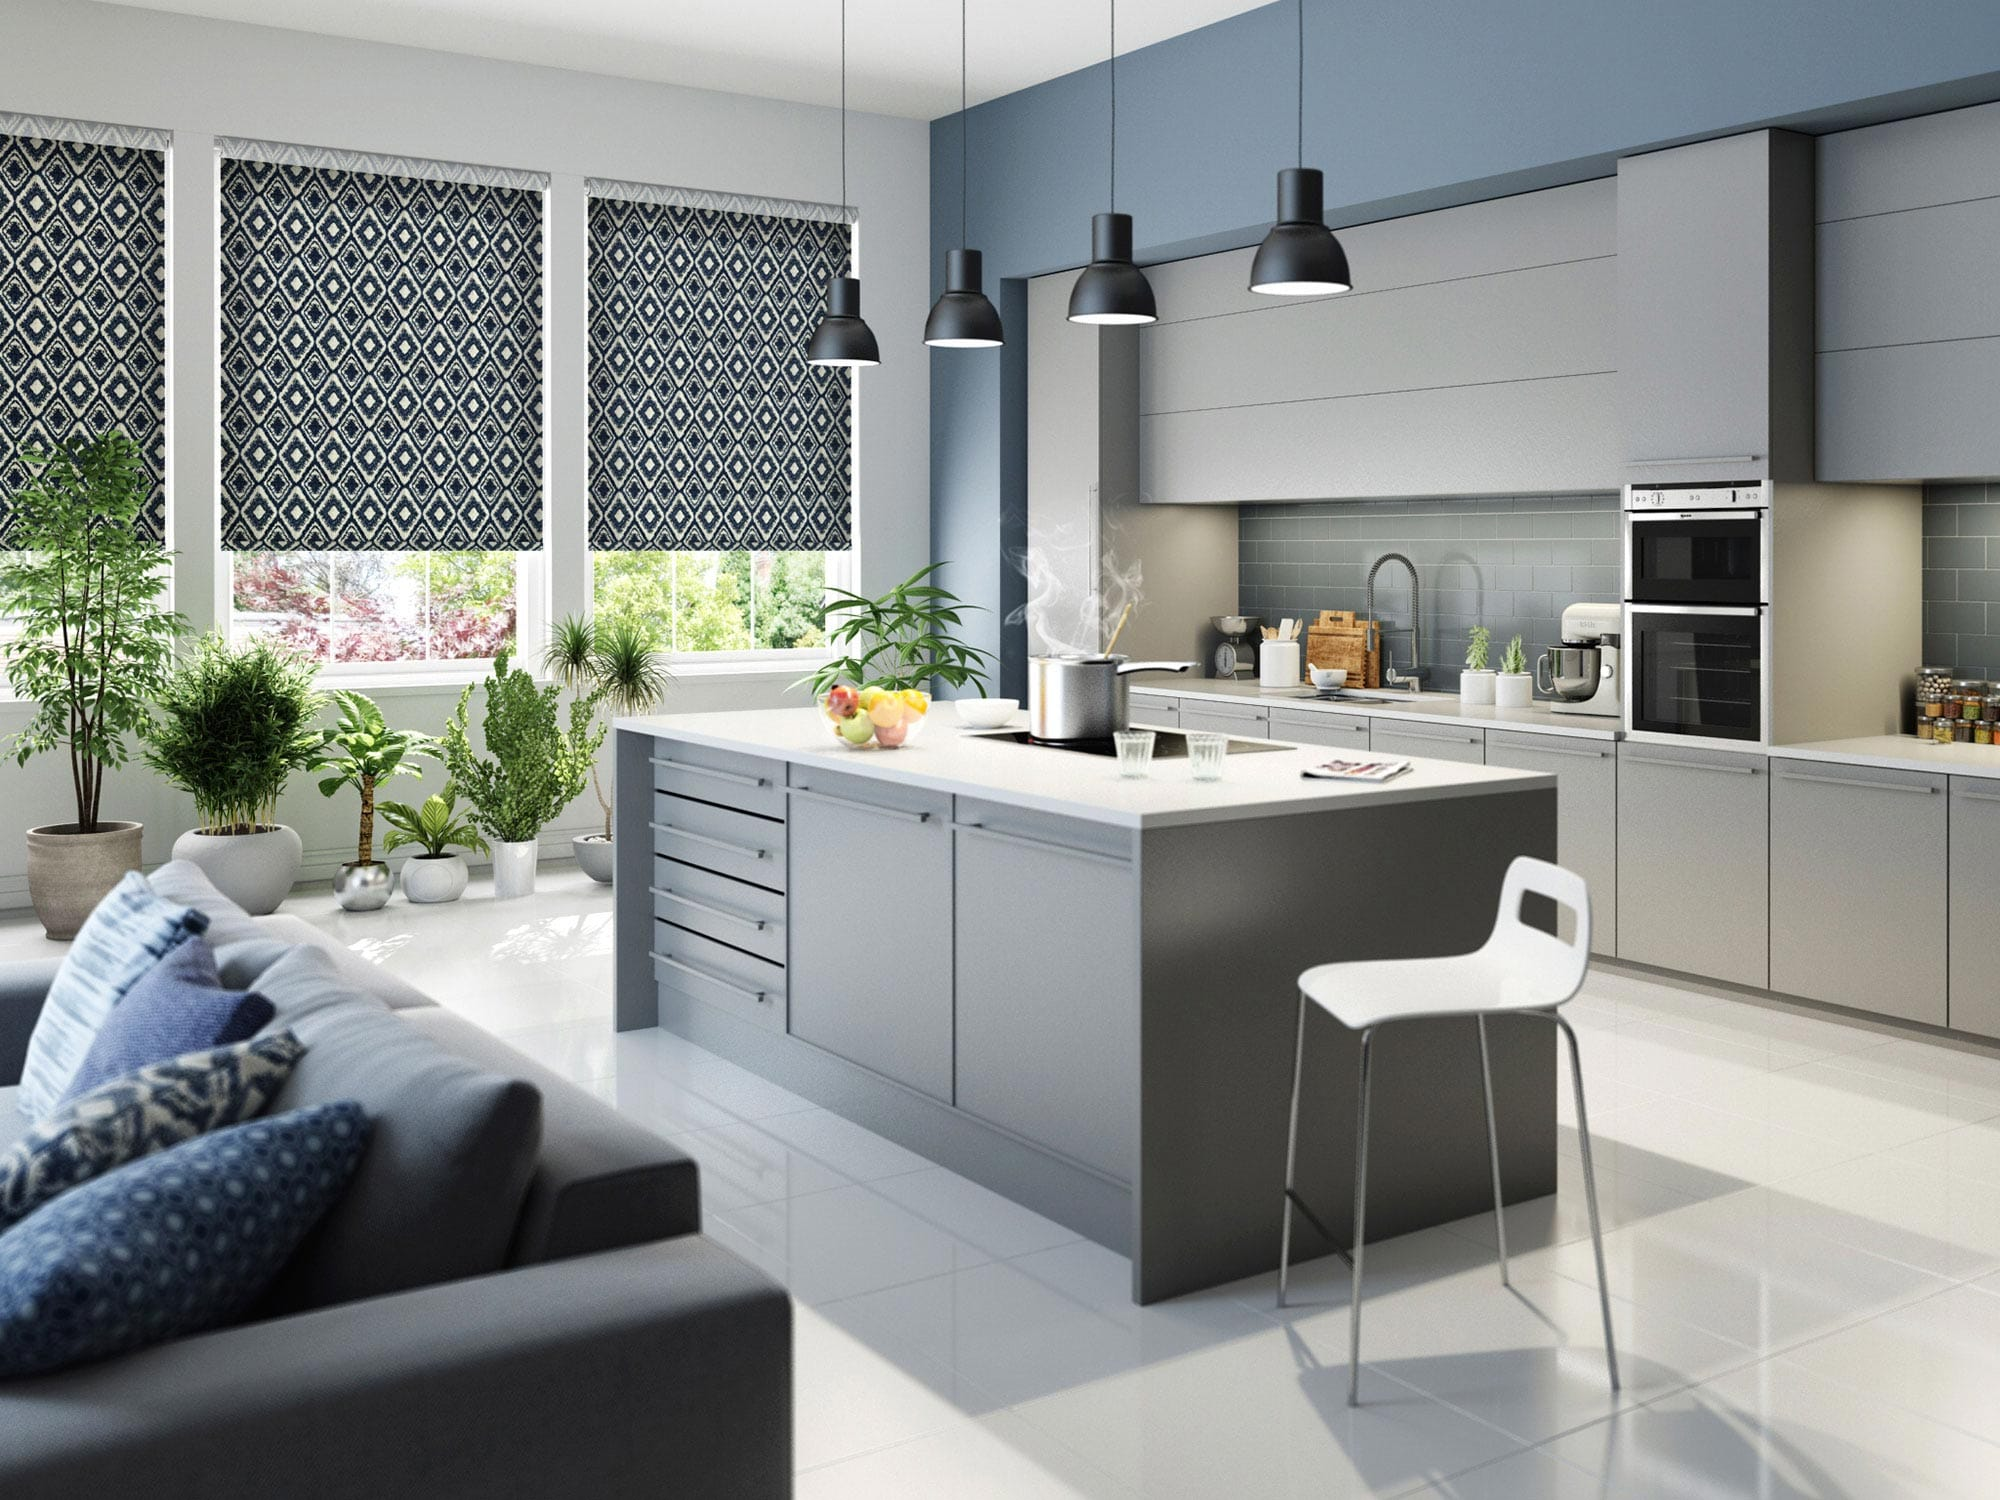 Roller Blinds For Kitchens Roller Blinds By Tuissr Designer Blinds Featuring Sheer Voile